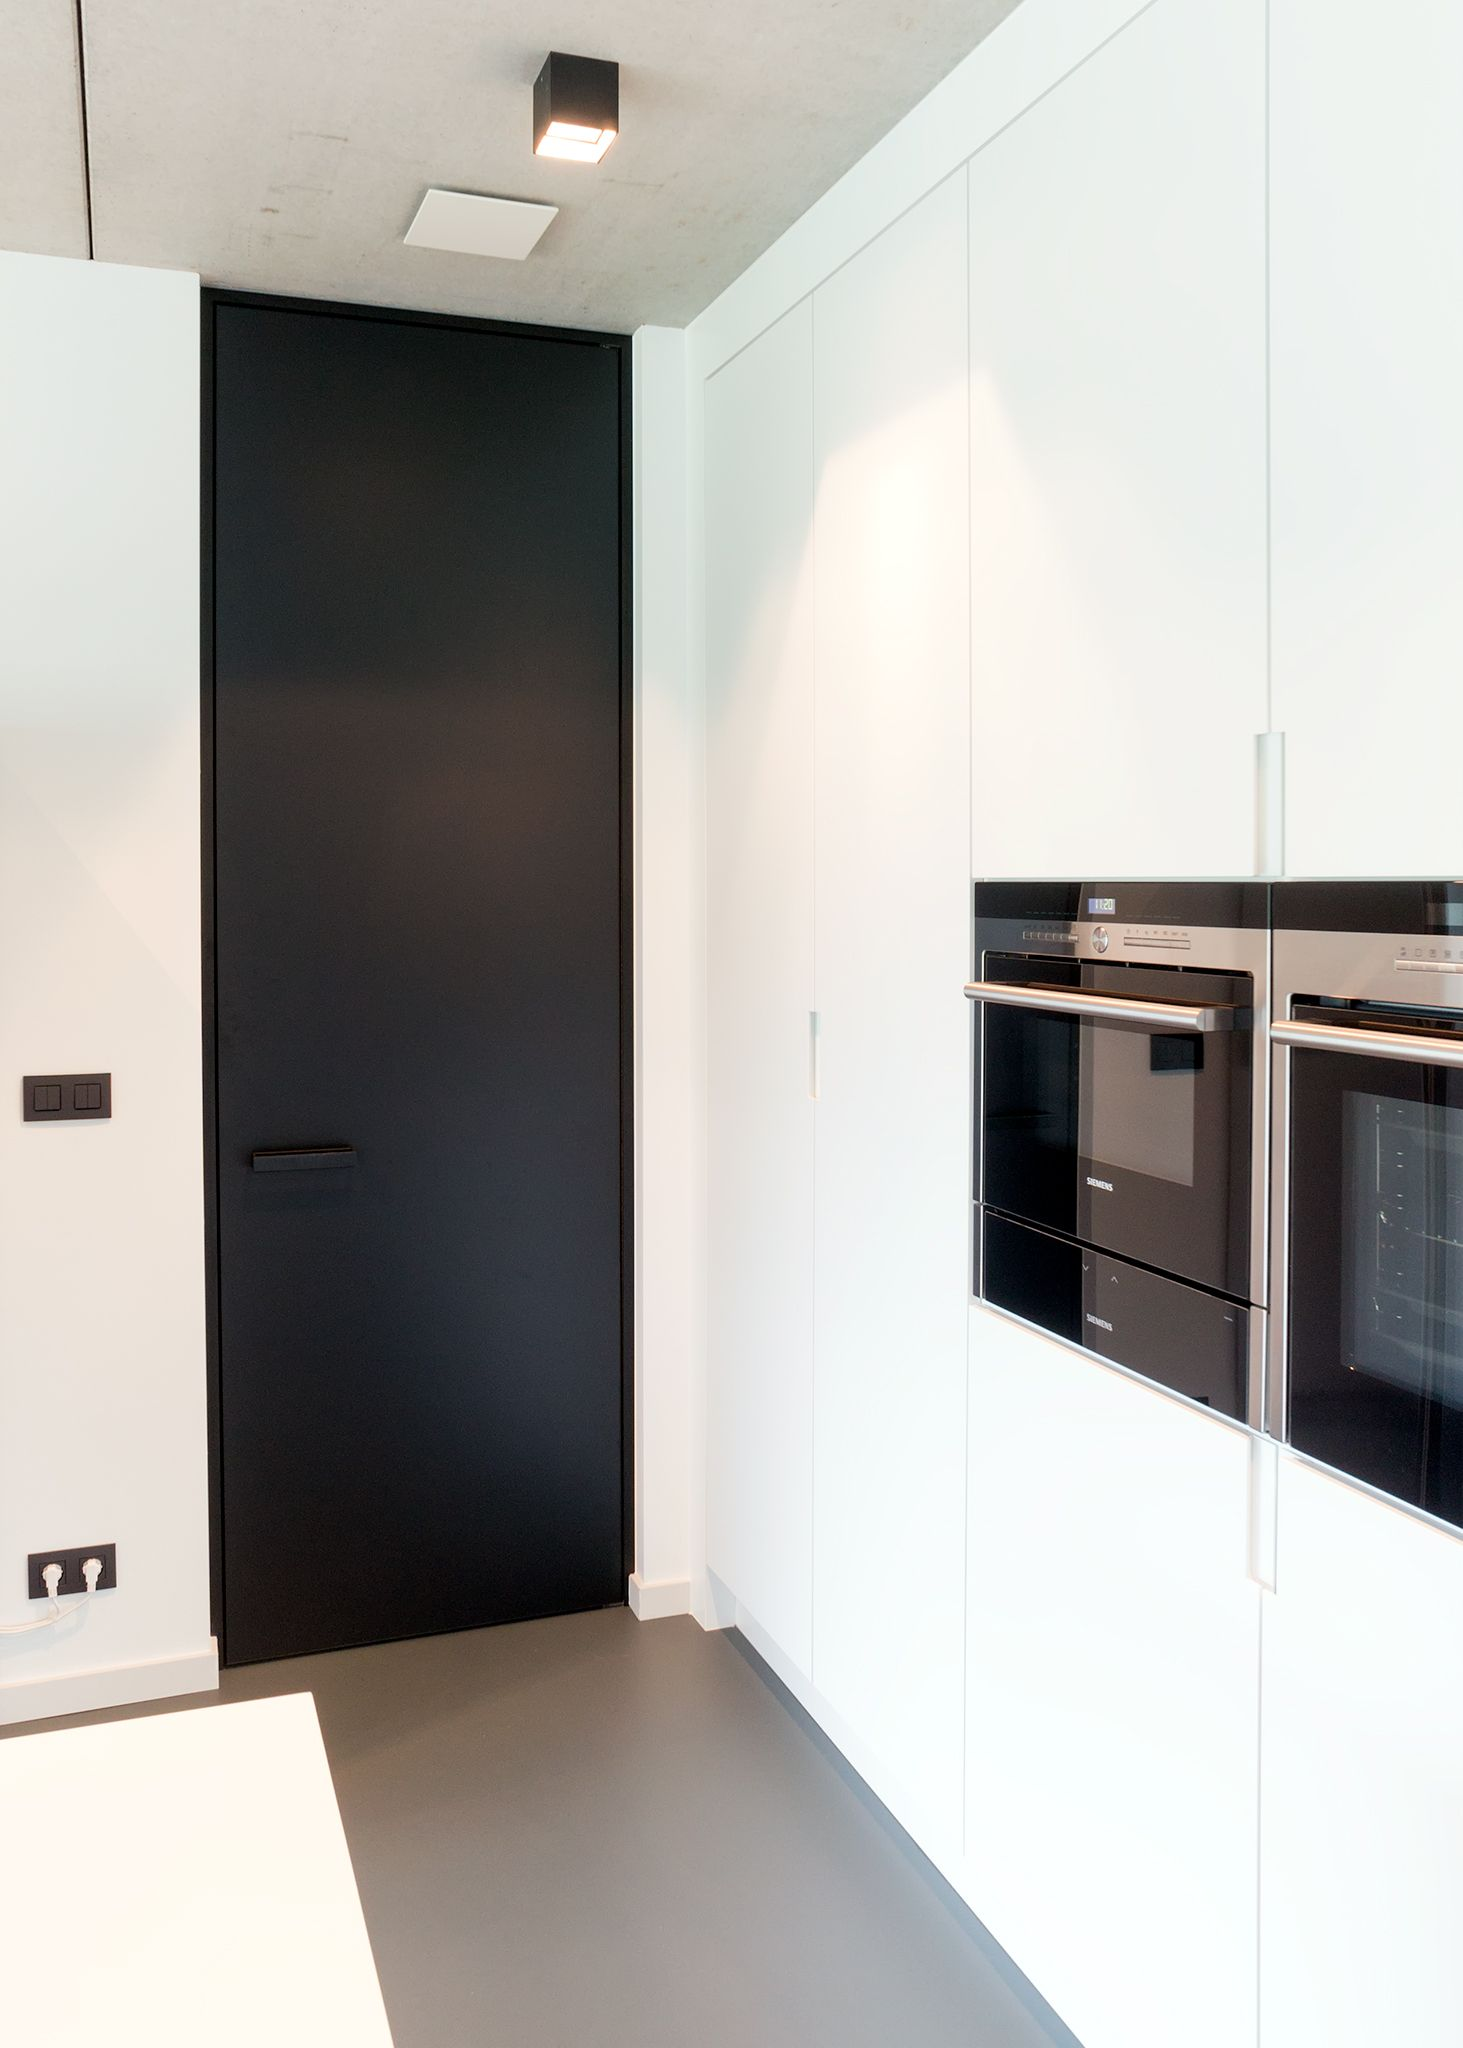 All White Interior Design Of The Homewares Designer Home: Modern Black Interior Door From Floor To Ceiling In A All